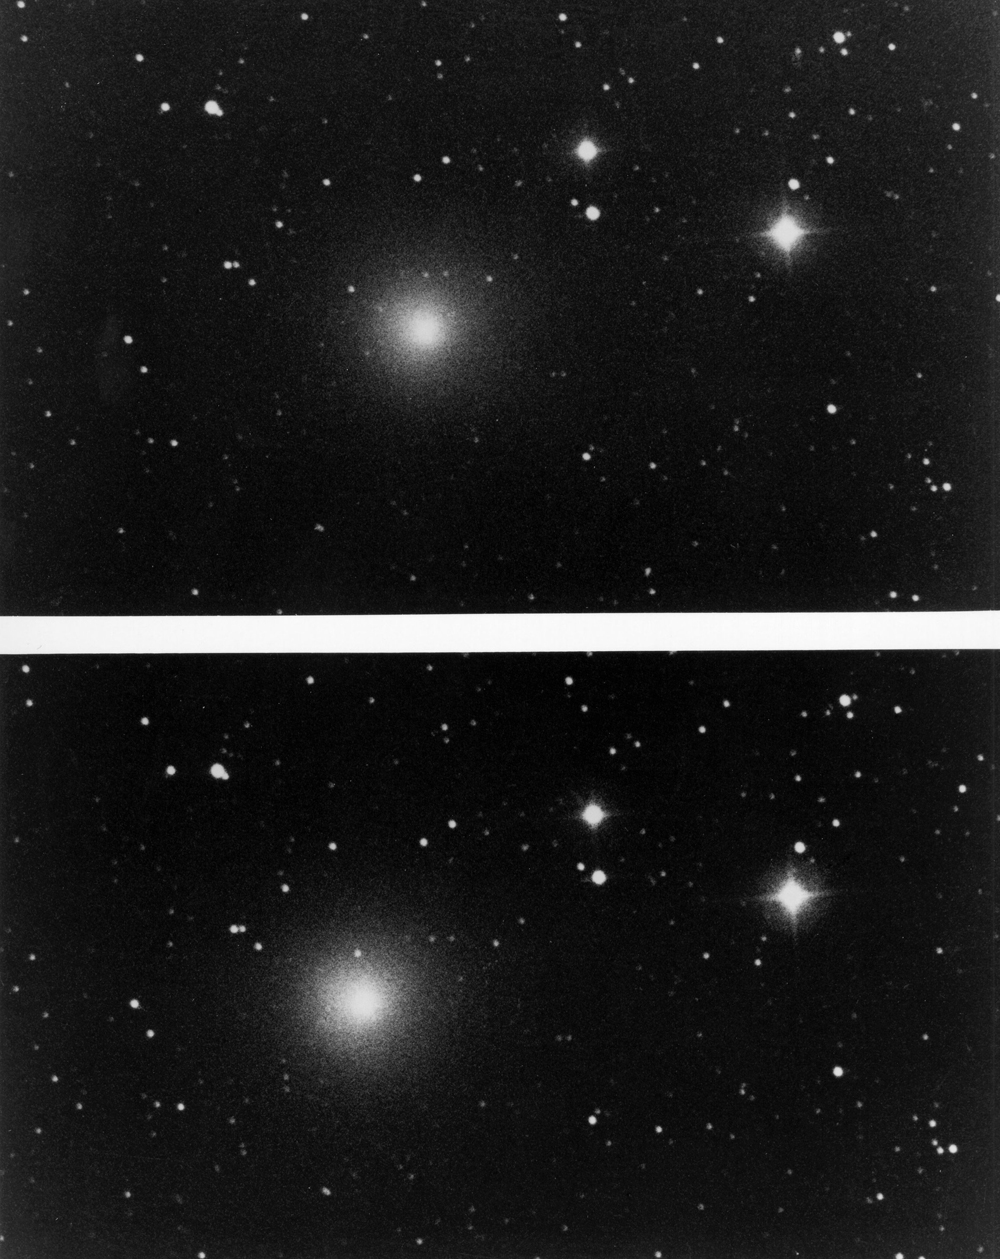 Photos of Halley's Comet Through History